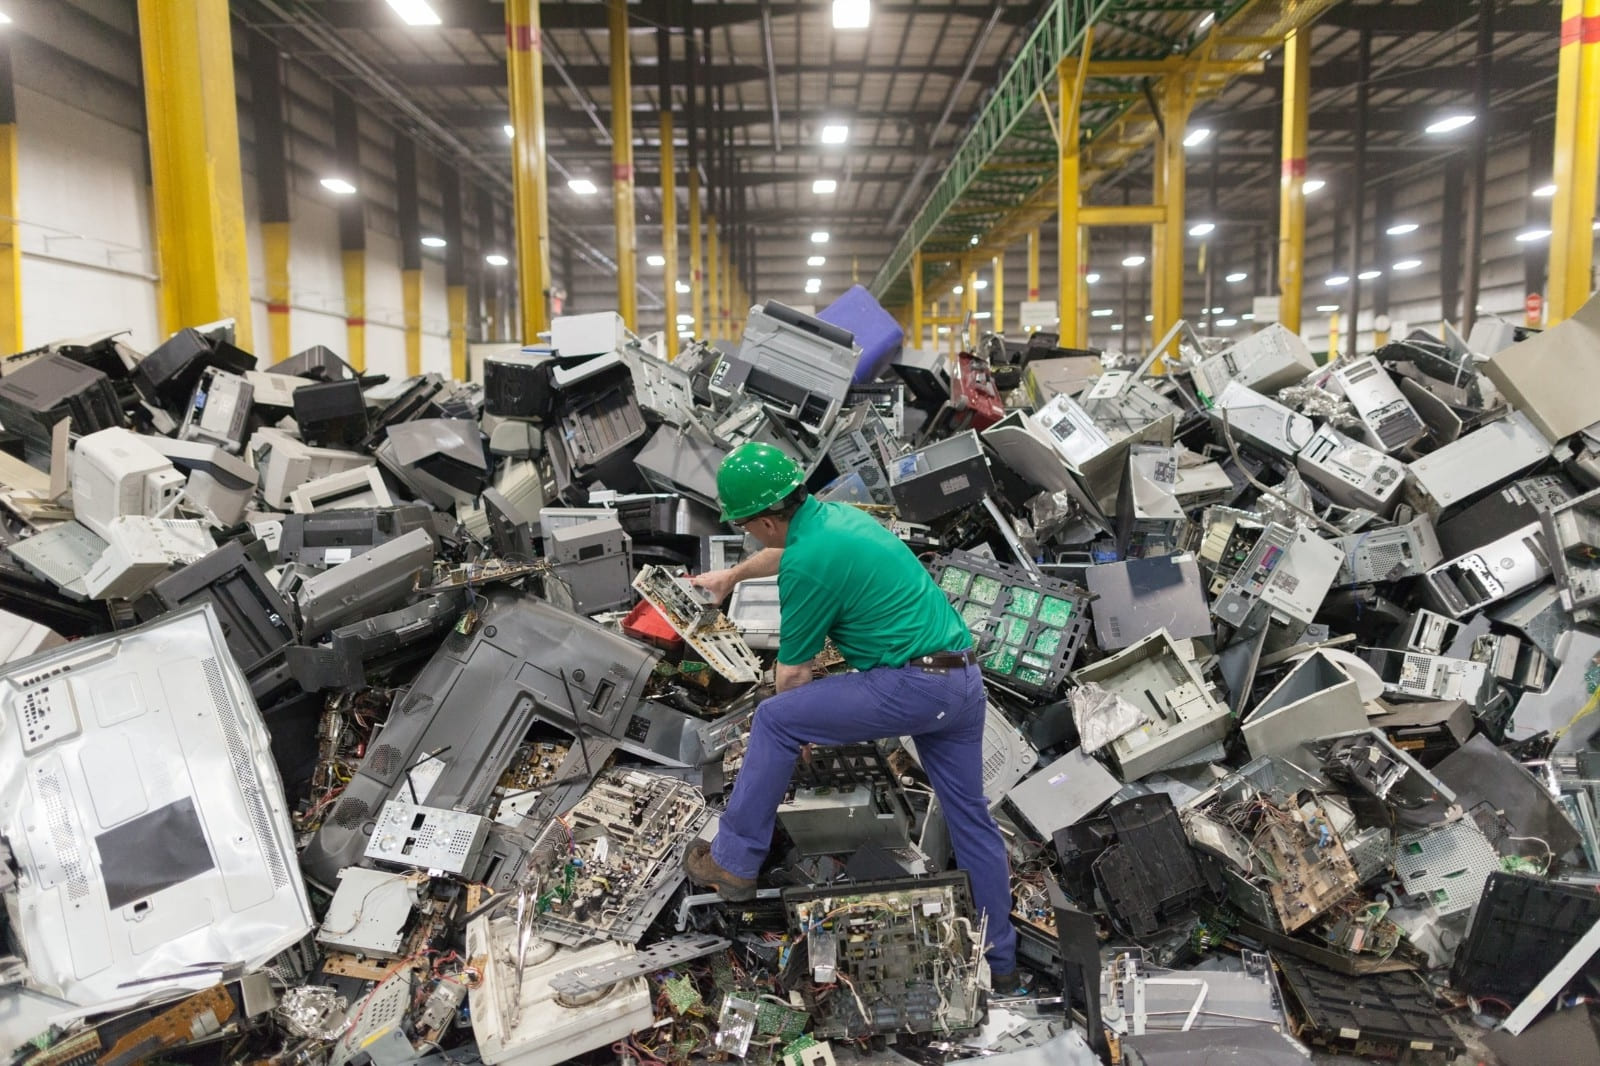 Technology companies make e-waste recycling difficult